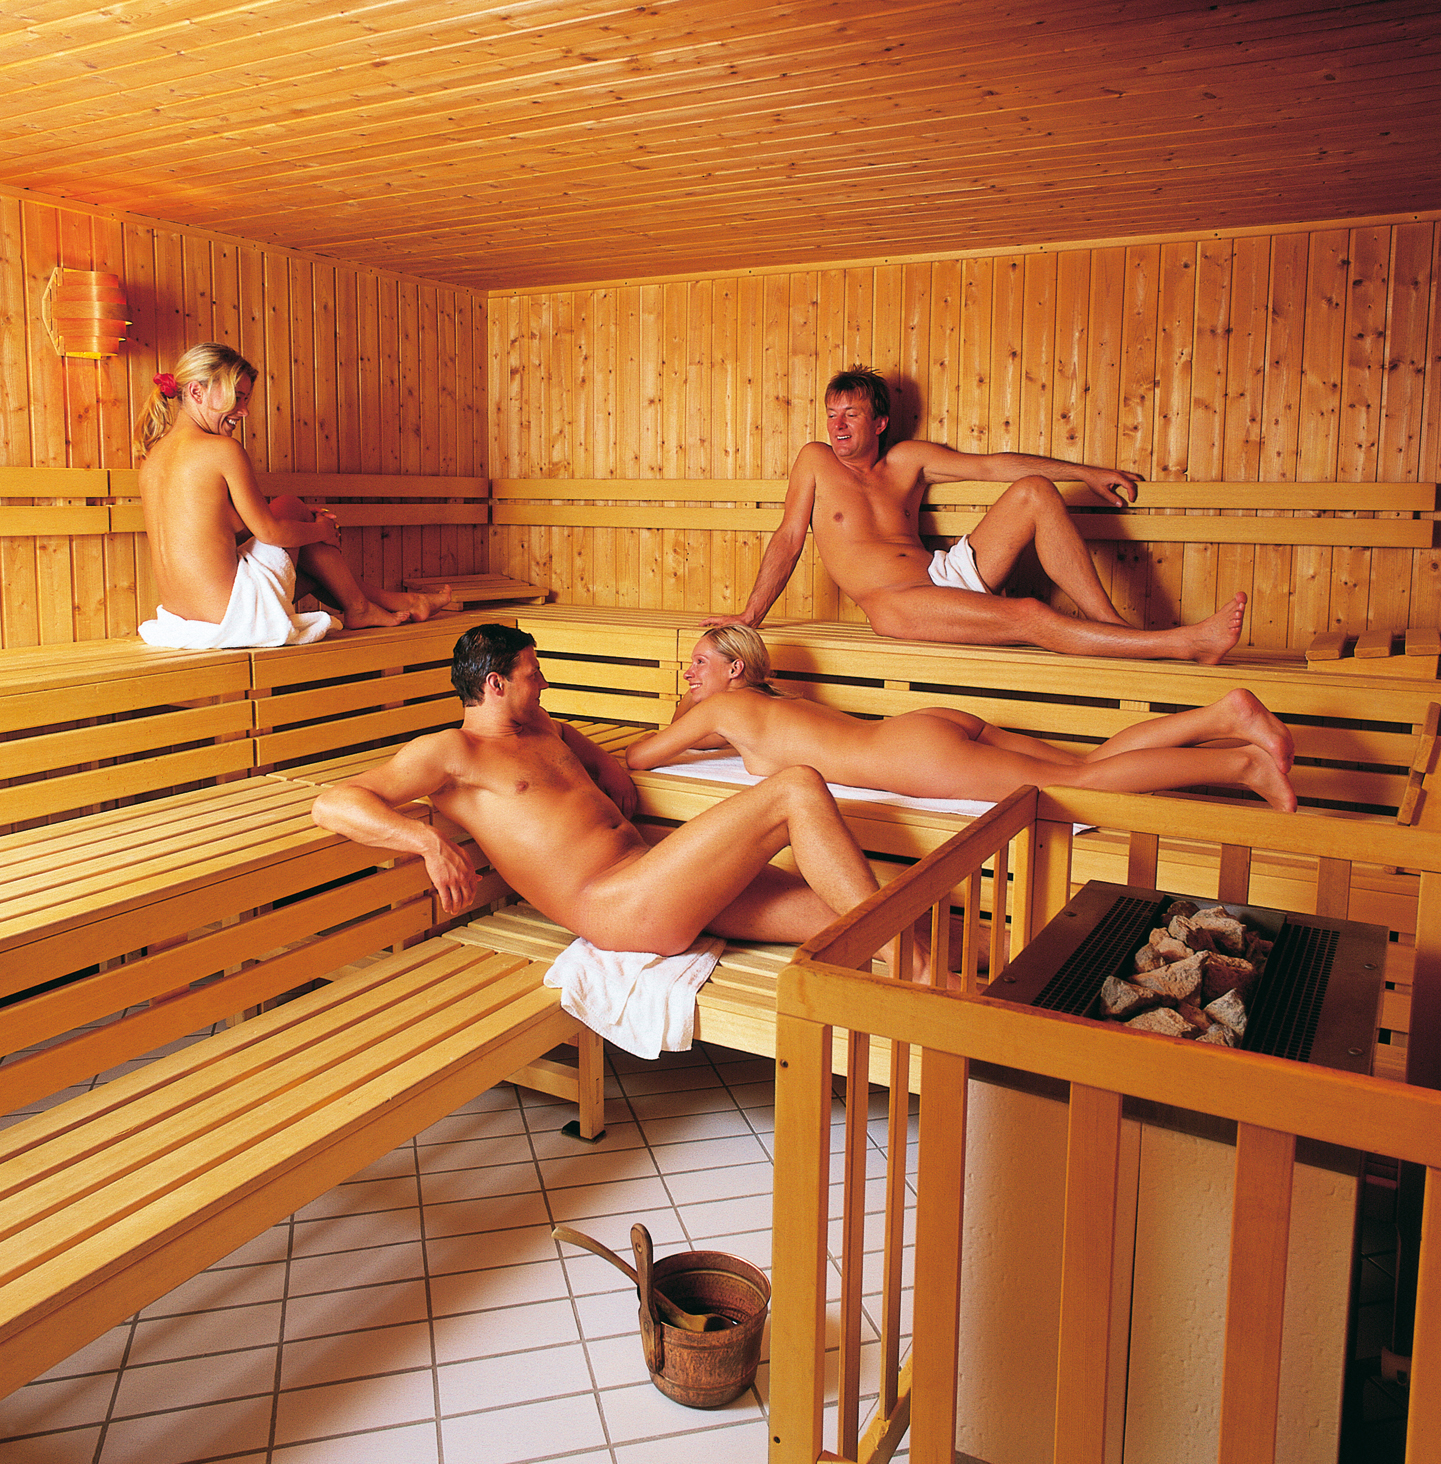 club saphir gay sauna bremen